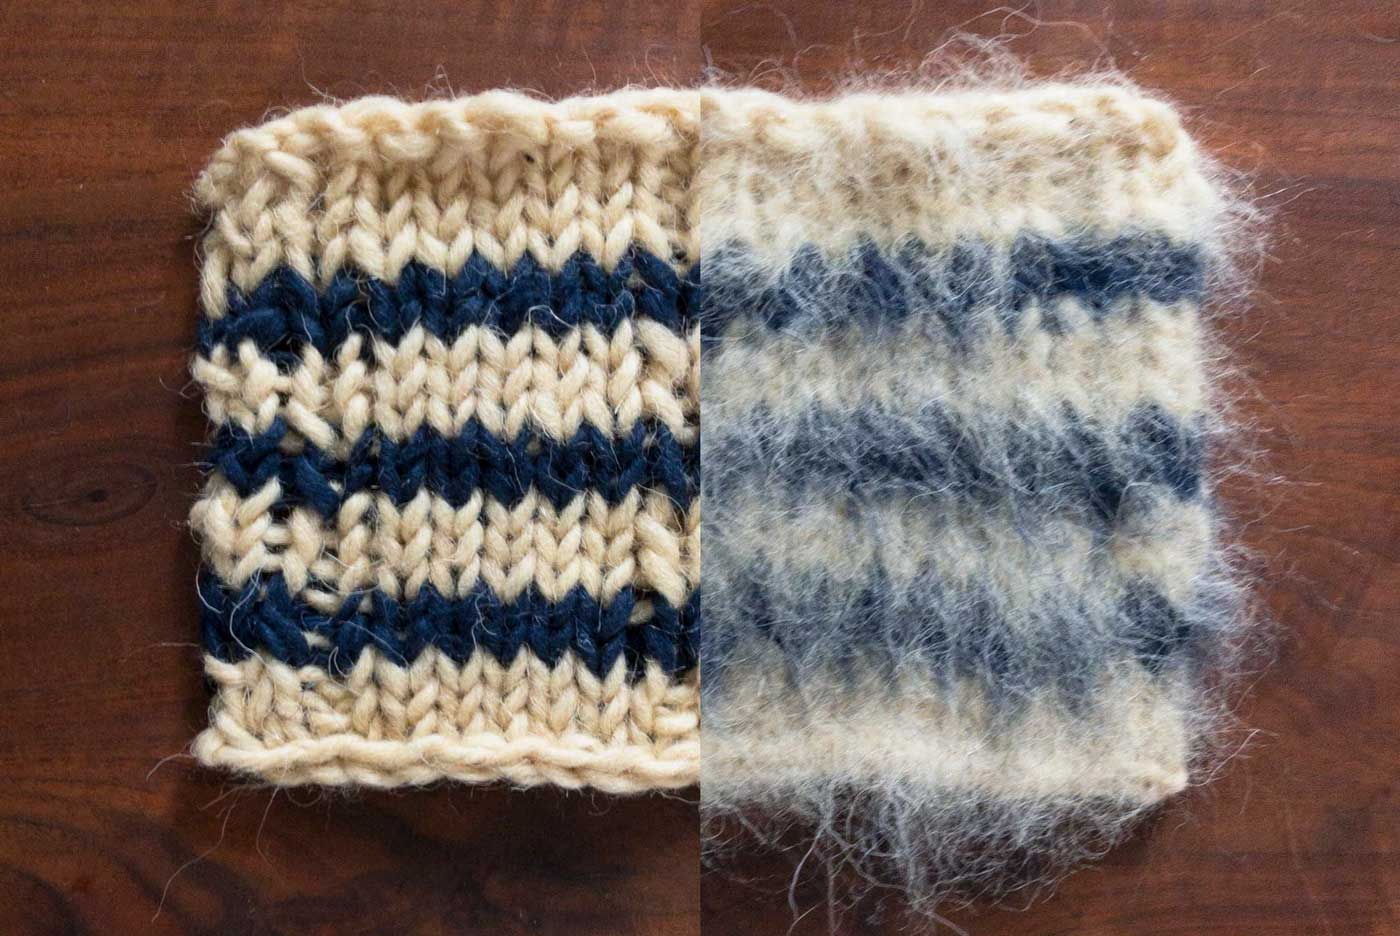 Cobertor yarn swatch, shown before and after brushing.